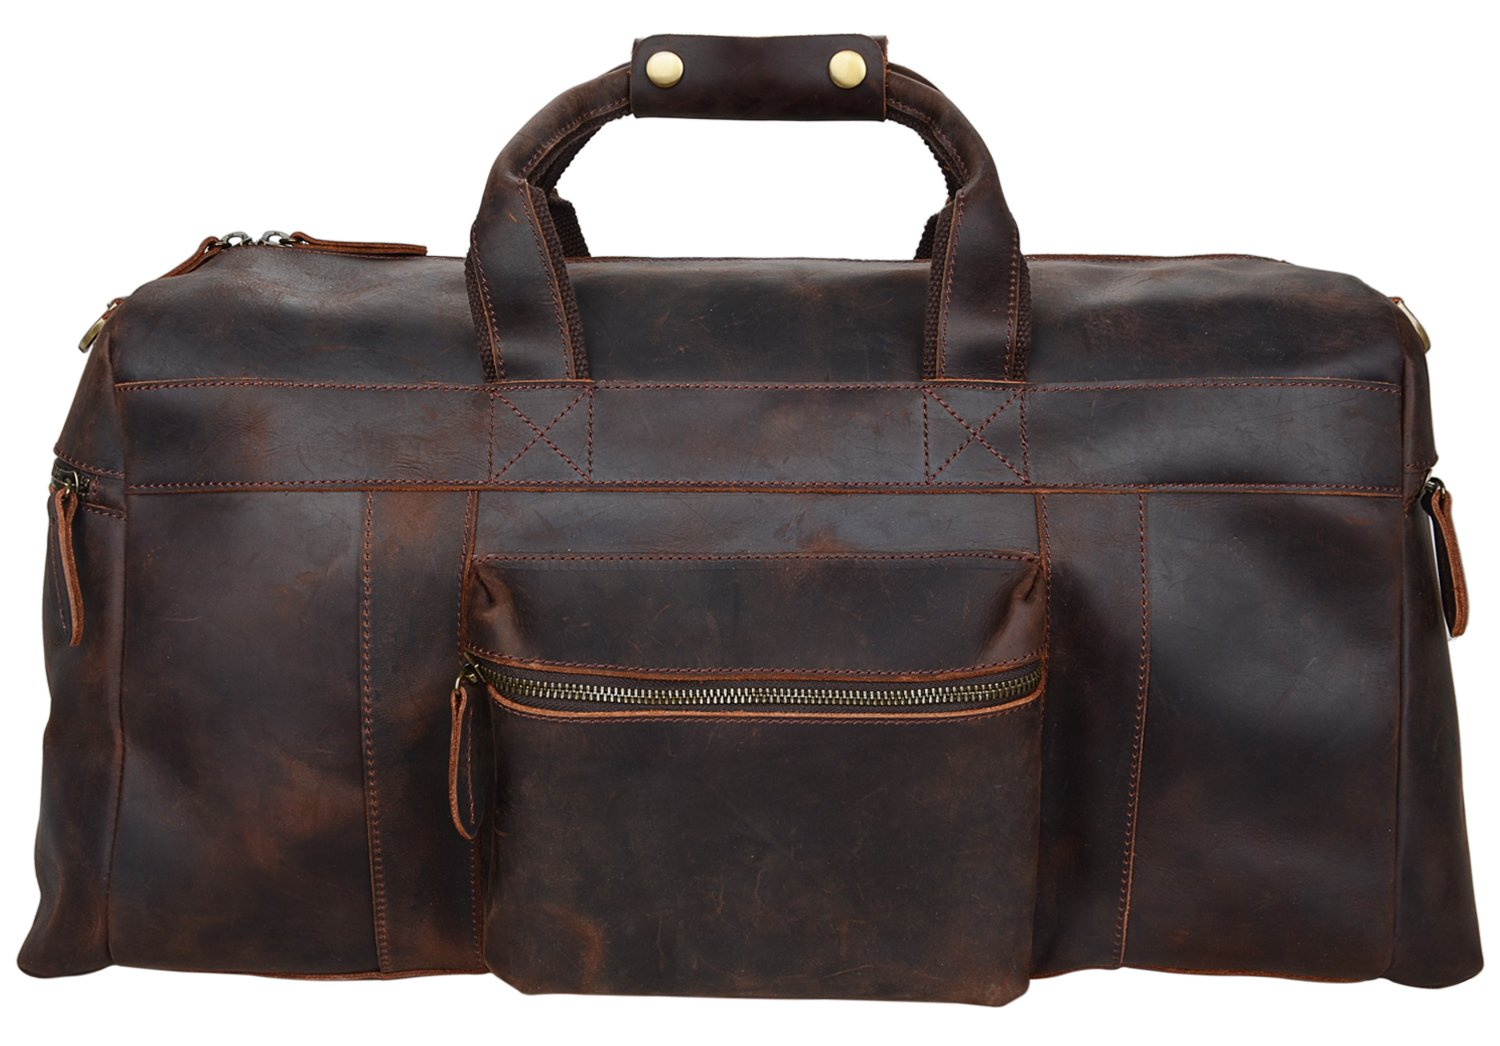 ALTOSY Mens Vintage Crazy Horse Duffel Bag Overnight Travel Carry On Bag Weekend (YD8030, Dark Brown)